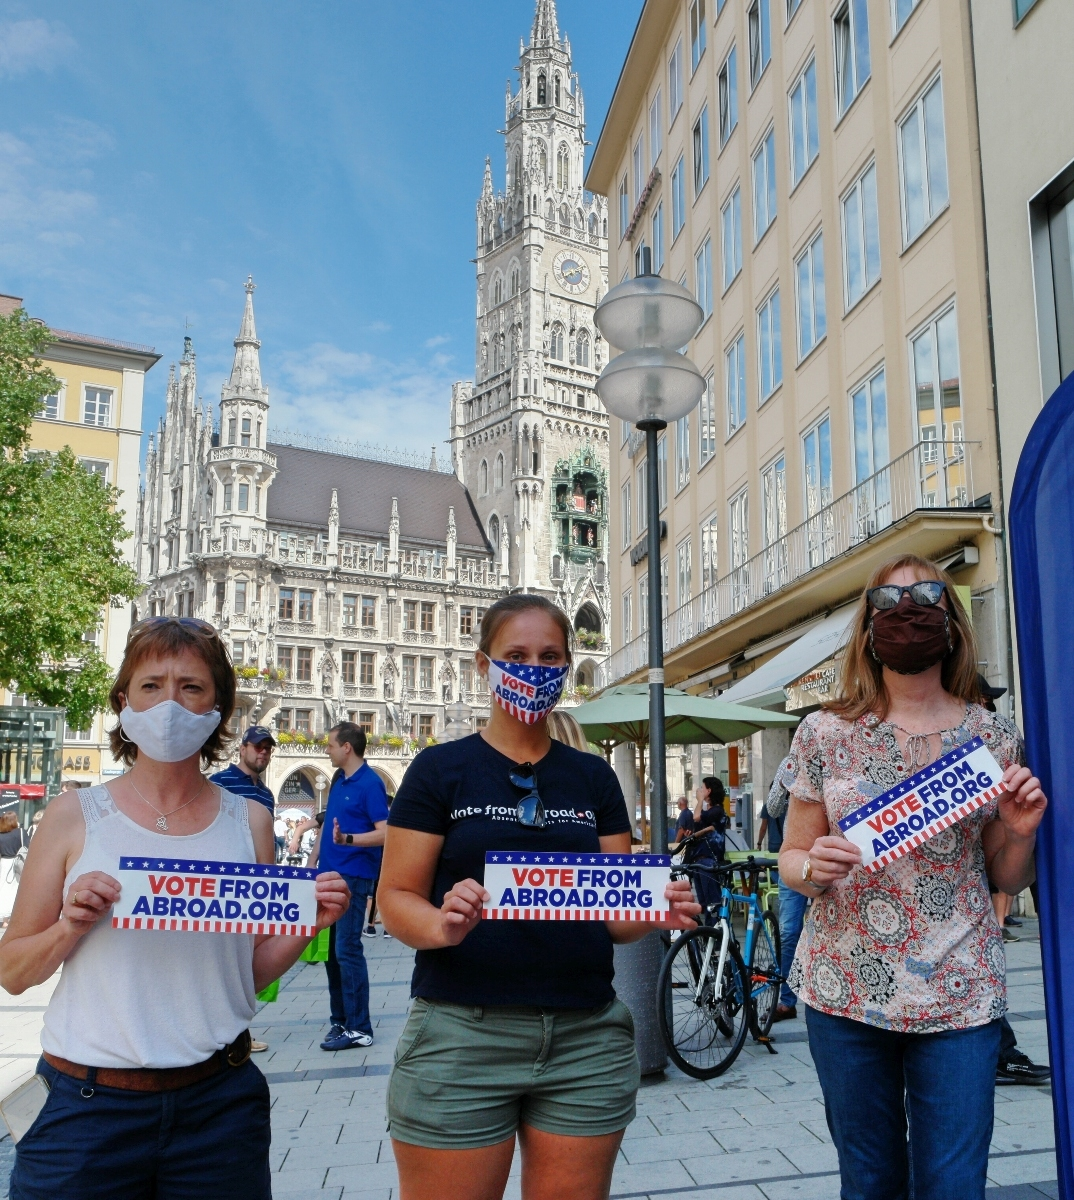 Sarah Carr, Candice Kerestan, and Heather Storm in Munich's Marienplatz as part of VoteFromAbroad.com's voter registration drive -- munichFOTO